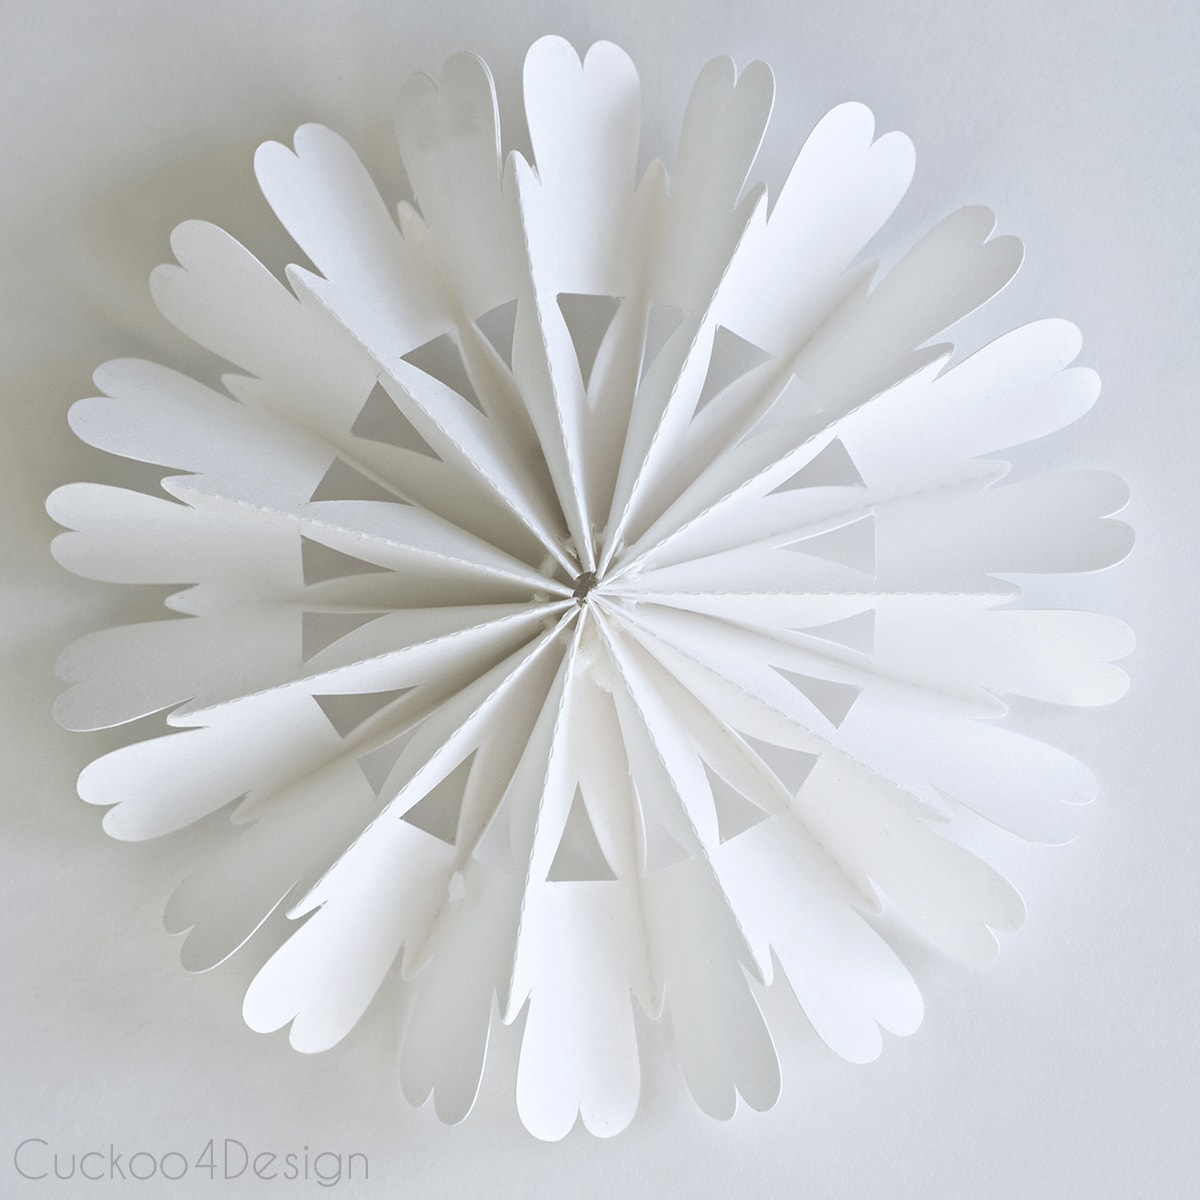 diy_cardboard_snowflake_ornament_cuckoo4design_4